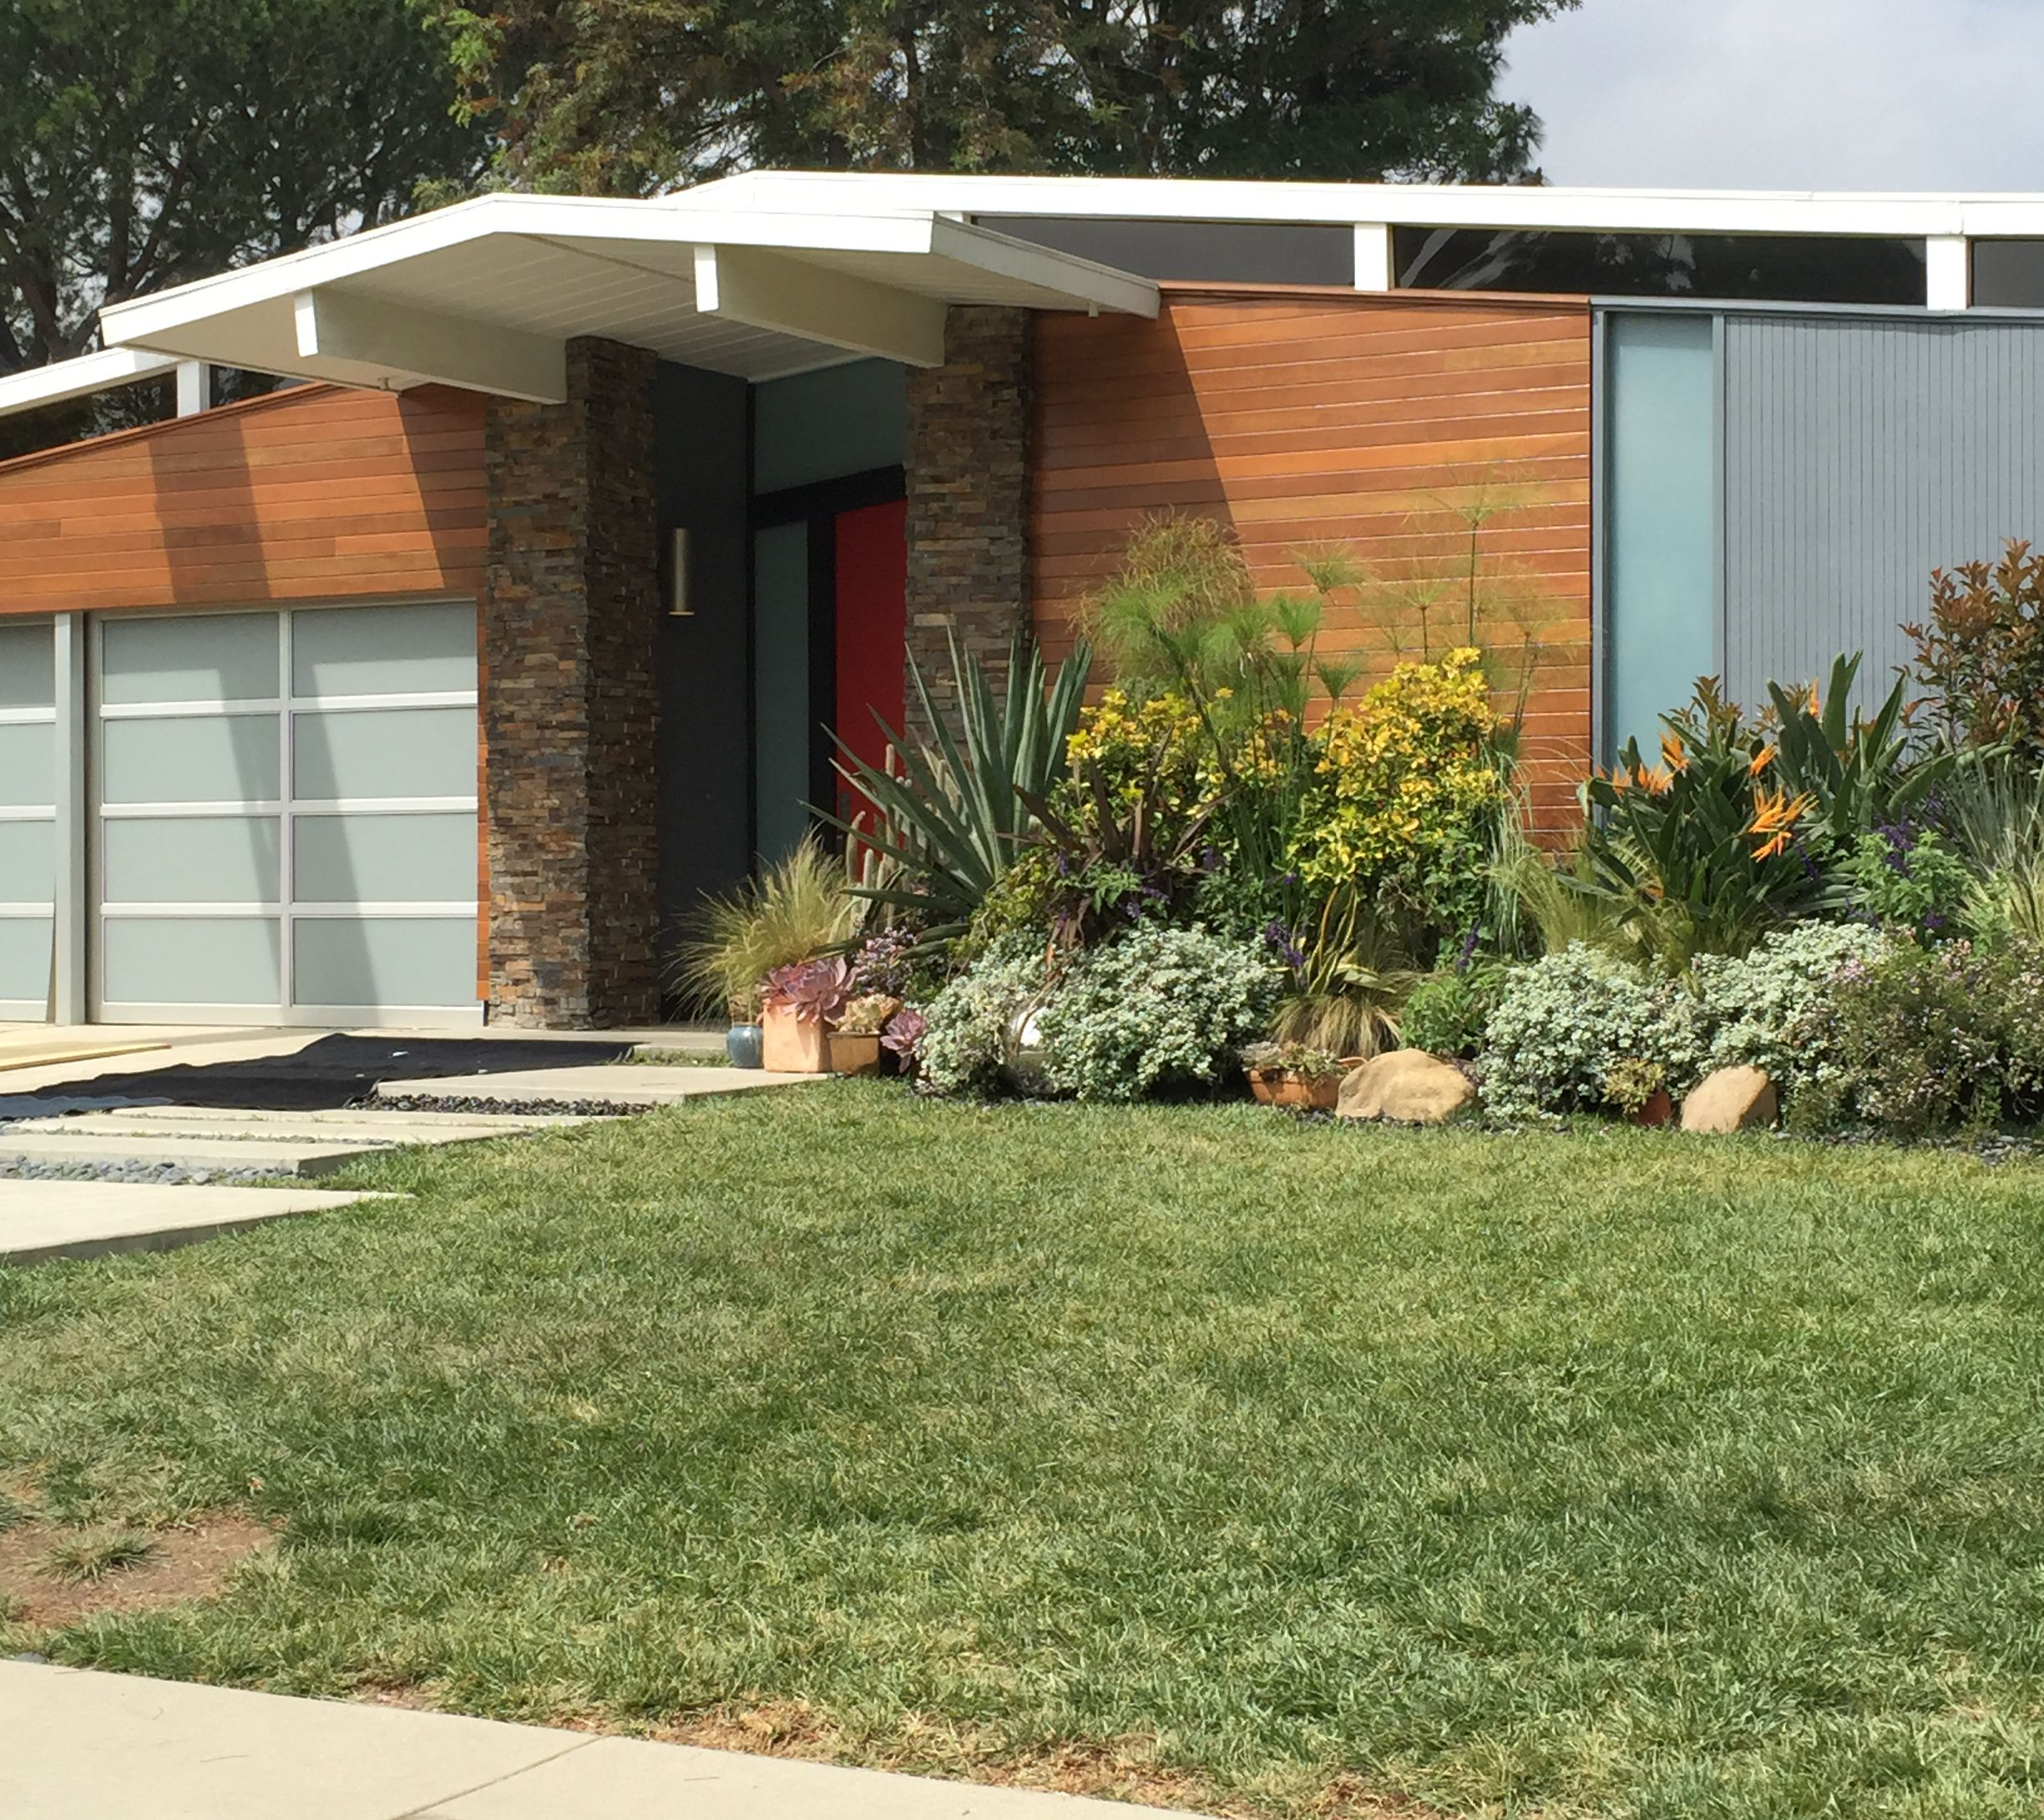 Balboa Highlands A New Tv Show Studio City Filmed Here The Other Week And Put A Faux Facade On One Of The Houses Love The W Eichler Homes Facade Home Reno